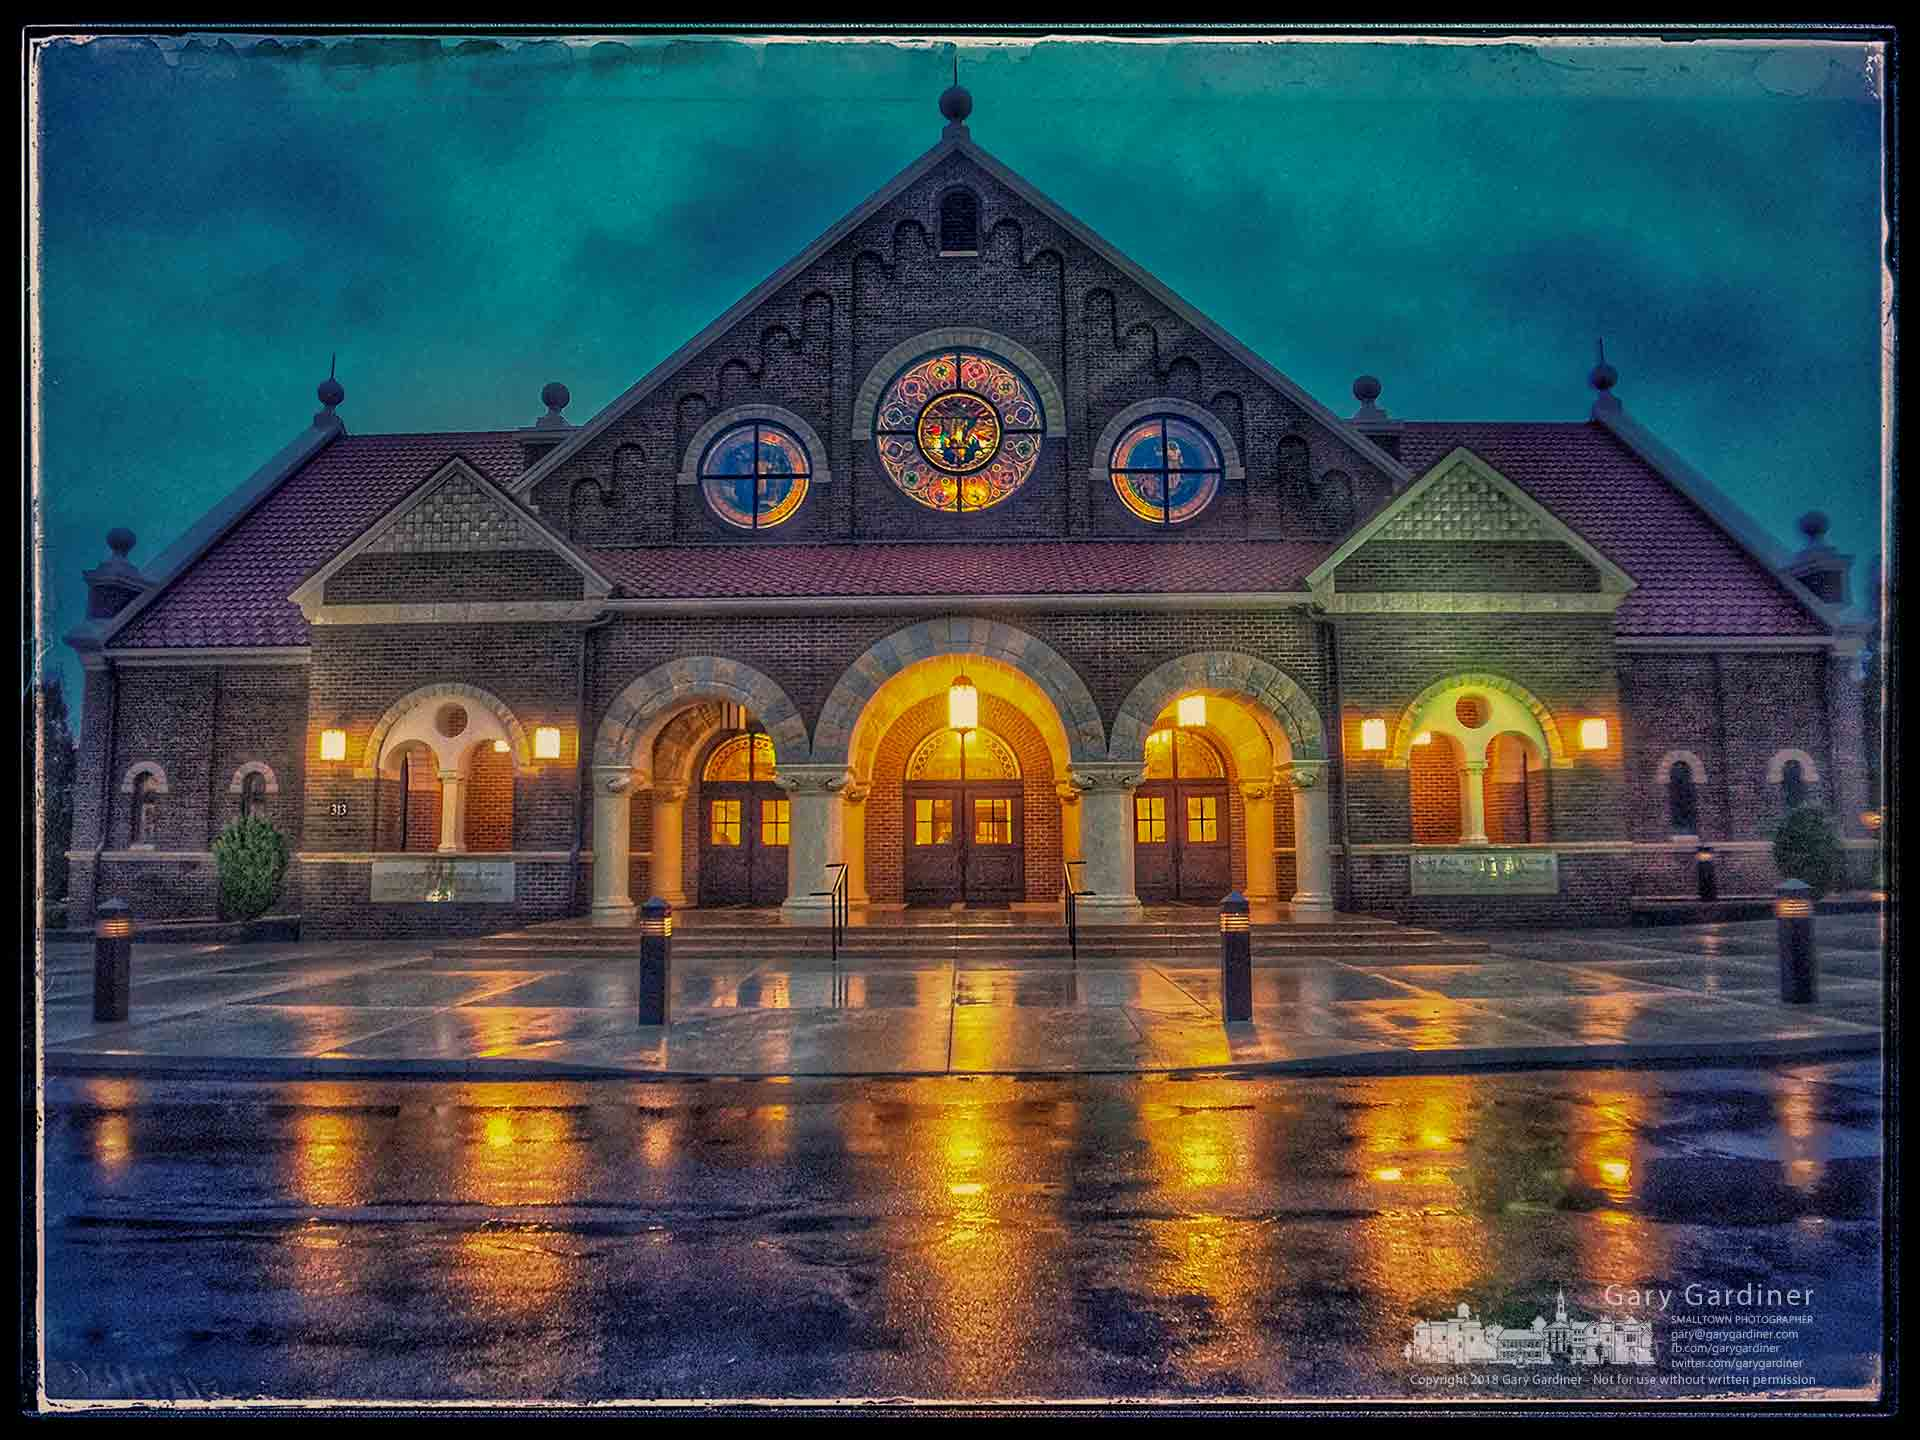 The early morning lights of St. Paul the Apostle Church are reflected in the morning rain puddling in the driveway and sidewalks as parishioners arrive before sunrise for the first Mass of the day. My Final Photo for Sept. 9, 2018.